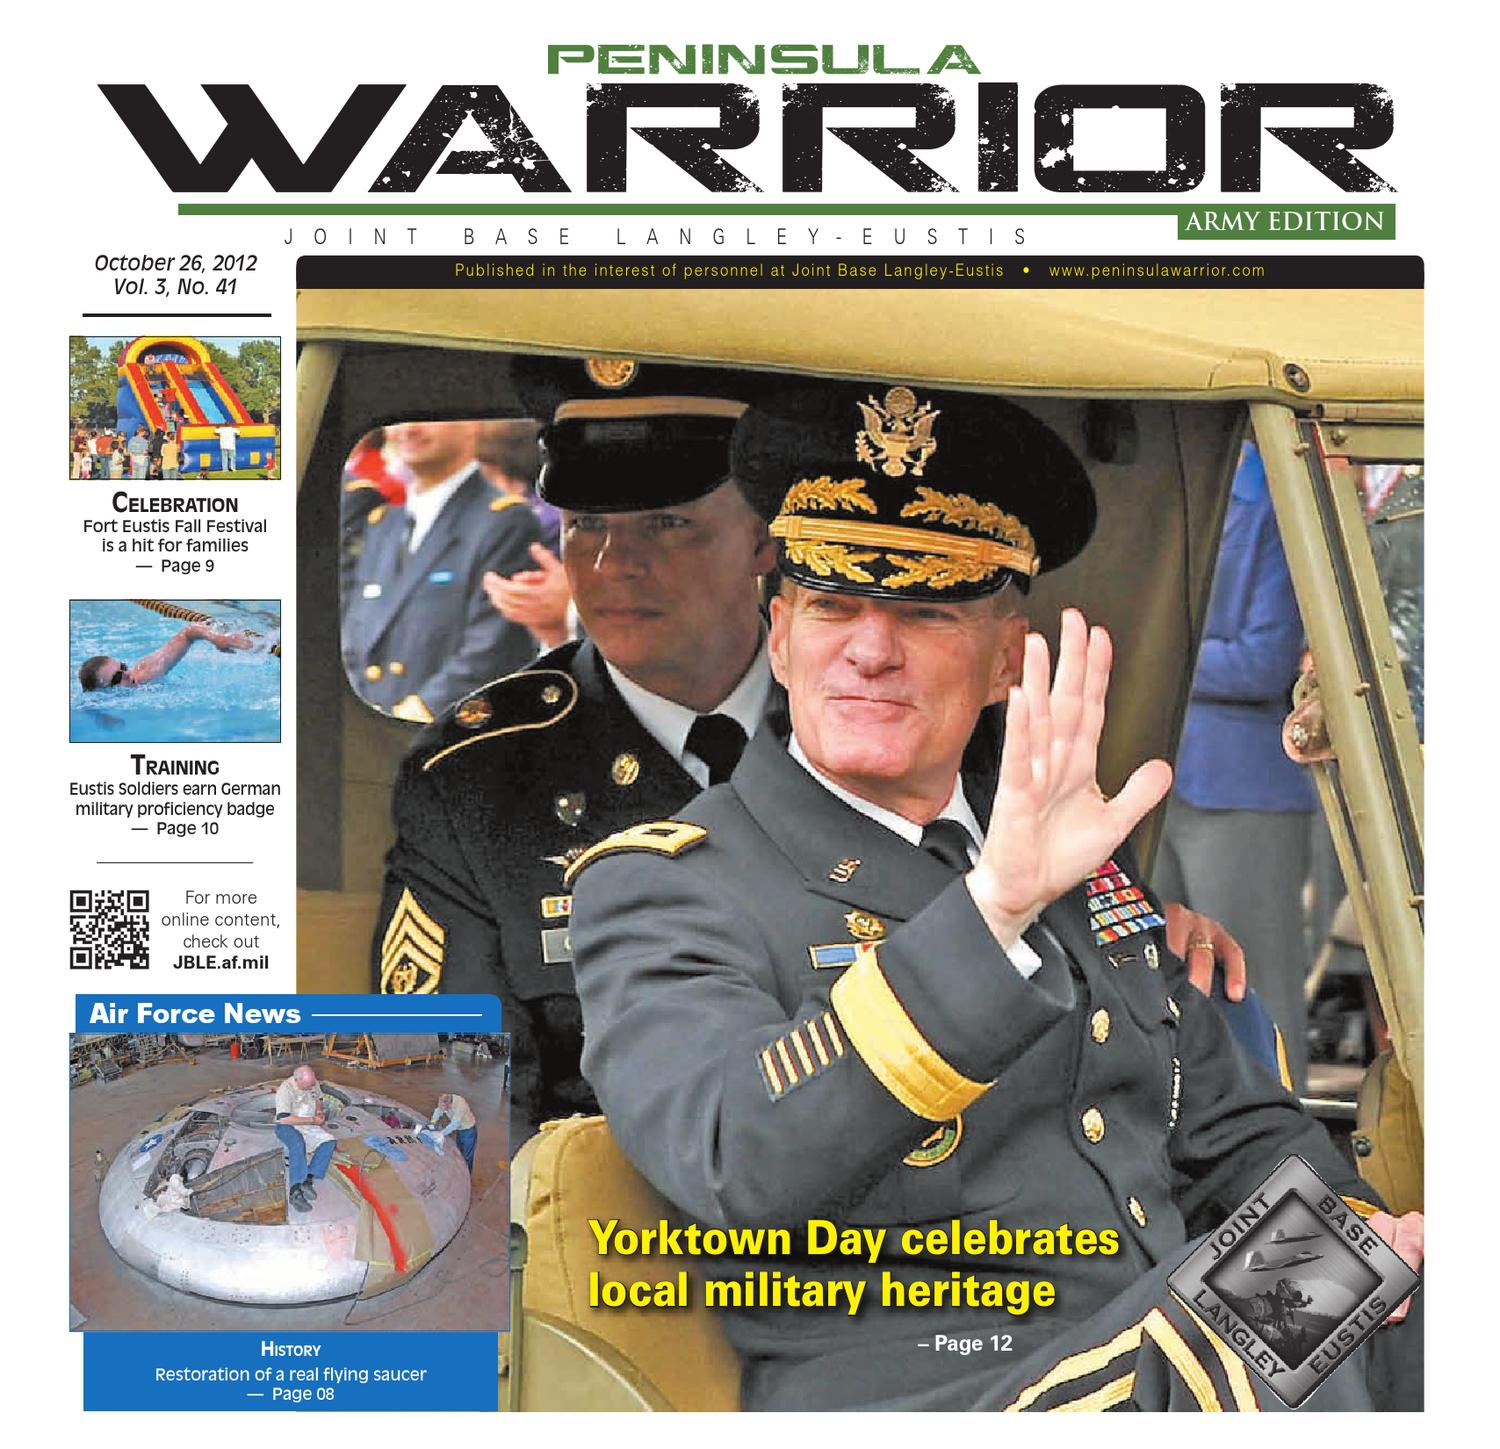 Peninsula Warrior Oct  26, 2012 Army Edition by Military News - issuu